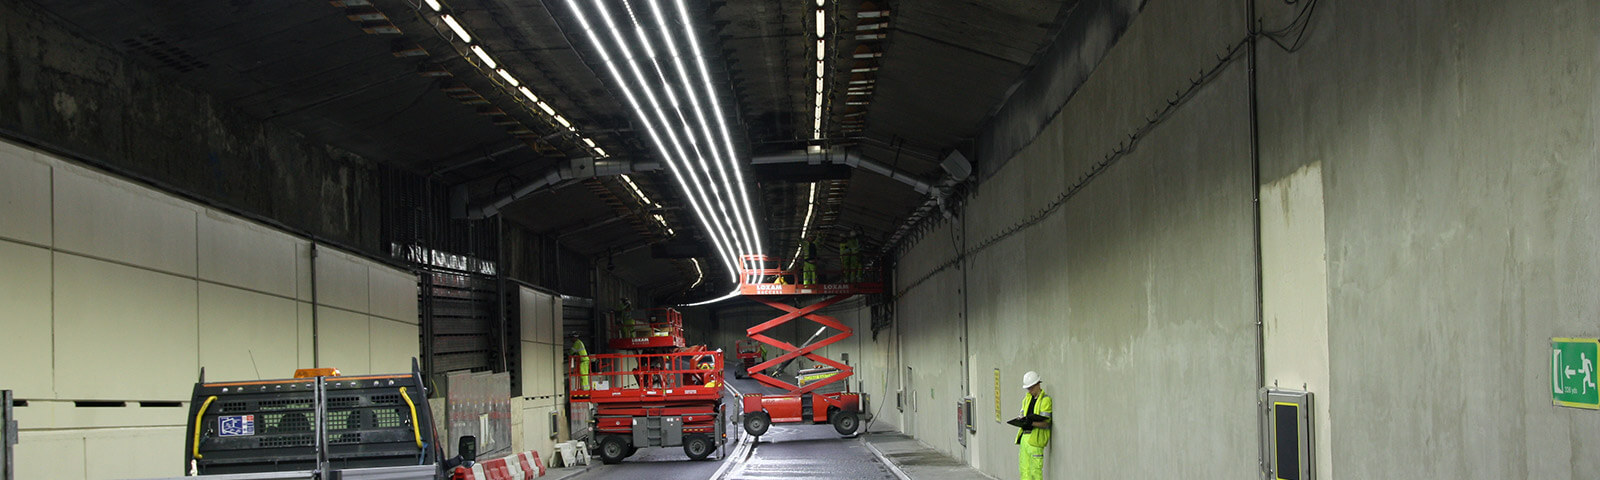 TfL Continues its LED Aspirations gallery image